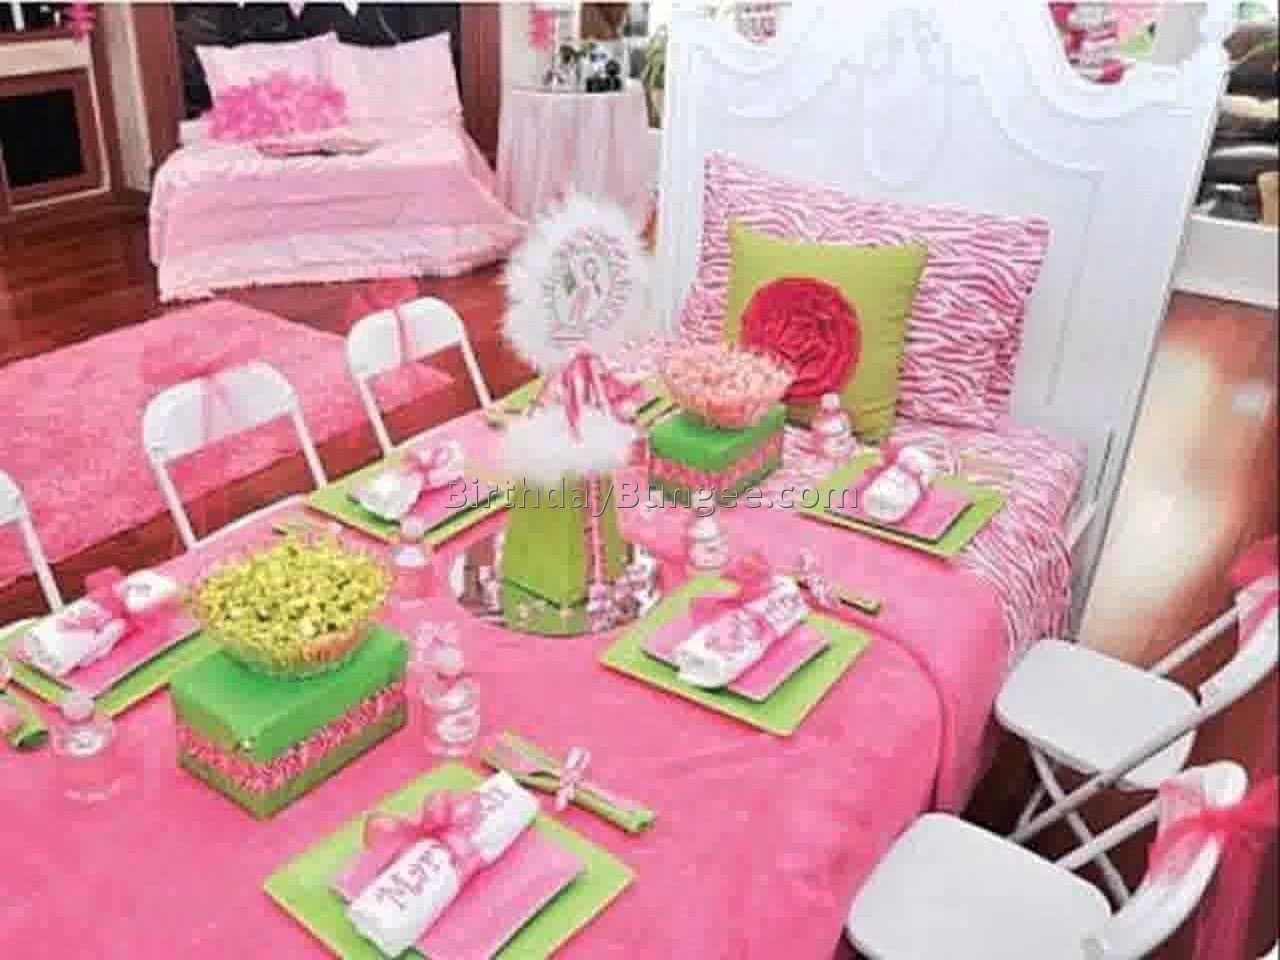 10 Trendy Birthday Party Ideas For A 13 Year Old girl birthday party ideas for year olds home design ideas 3 2020